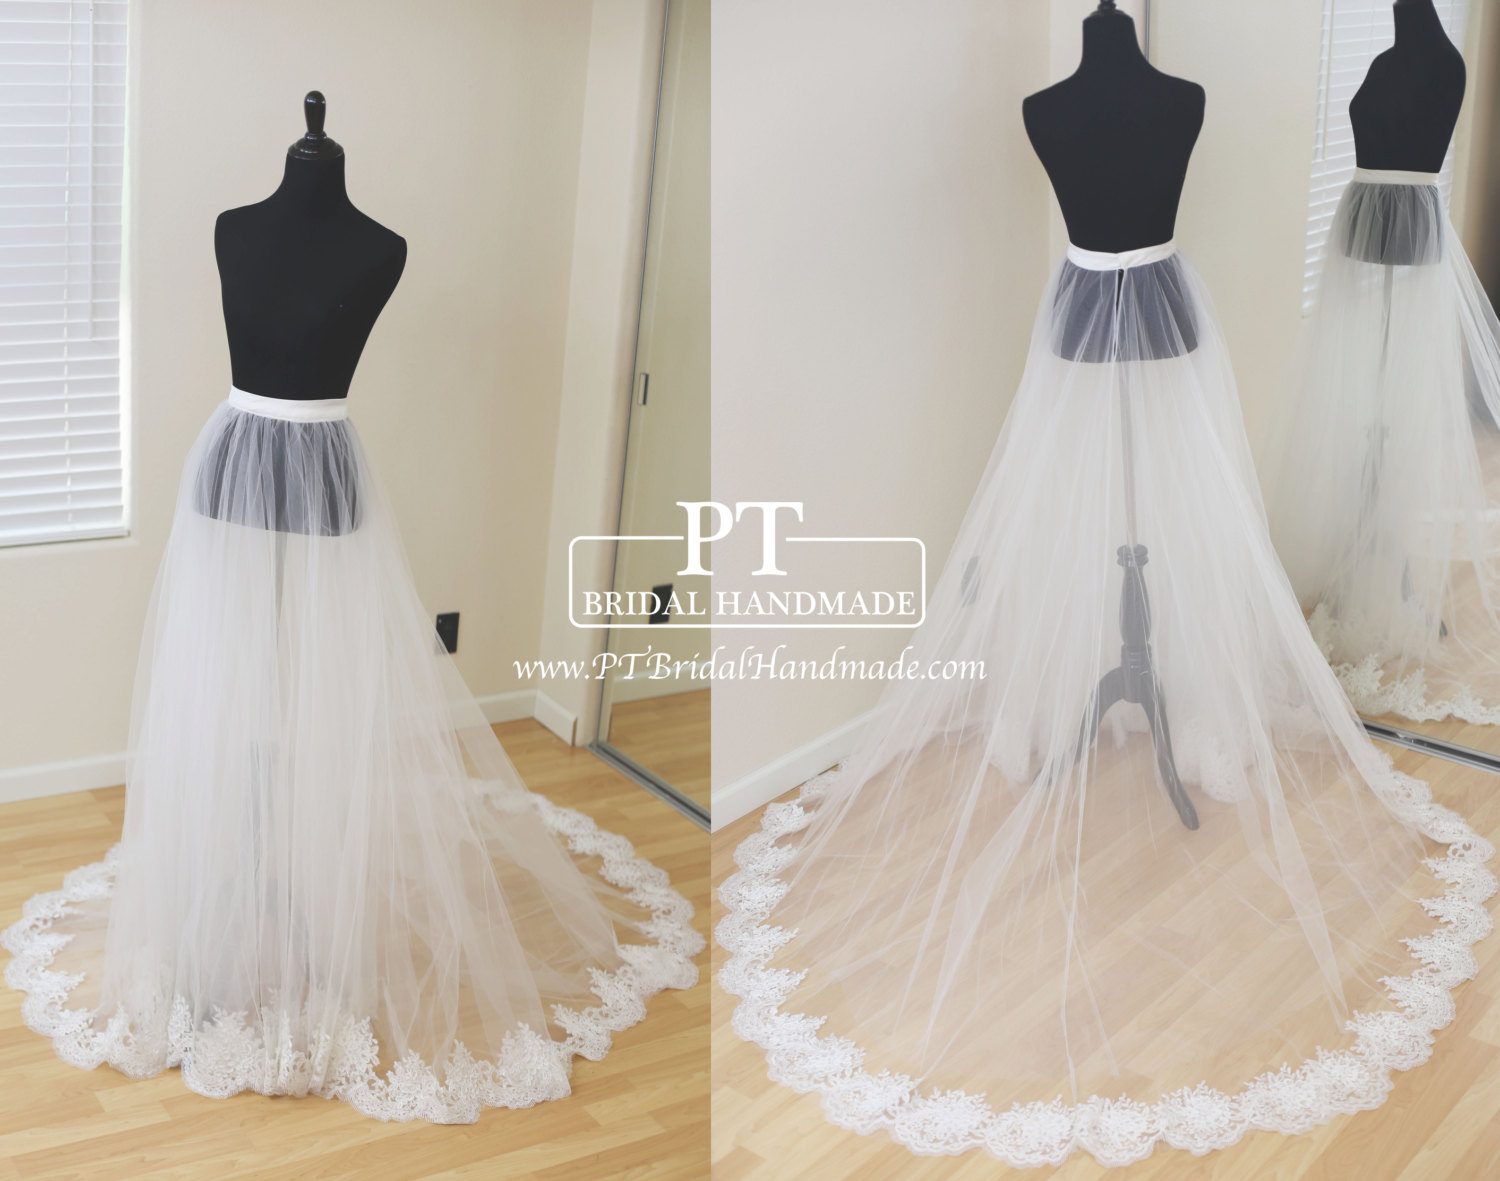 wedding dresses removable skirts photo - 1